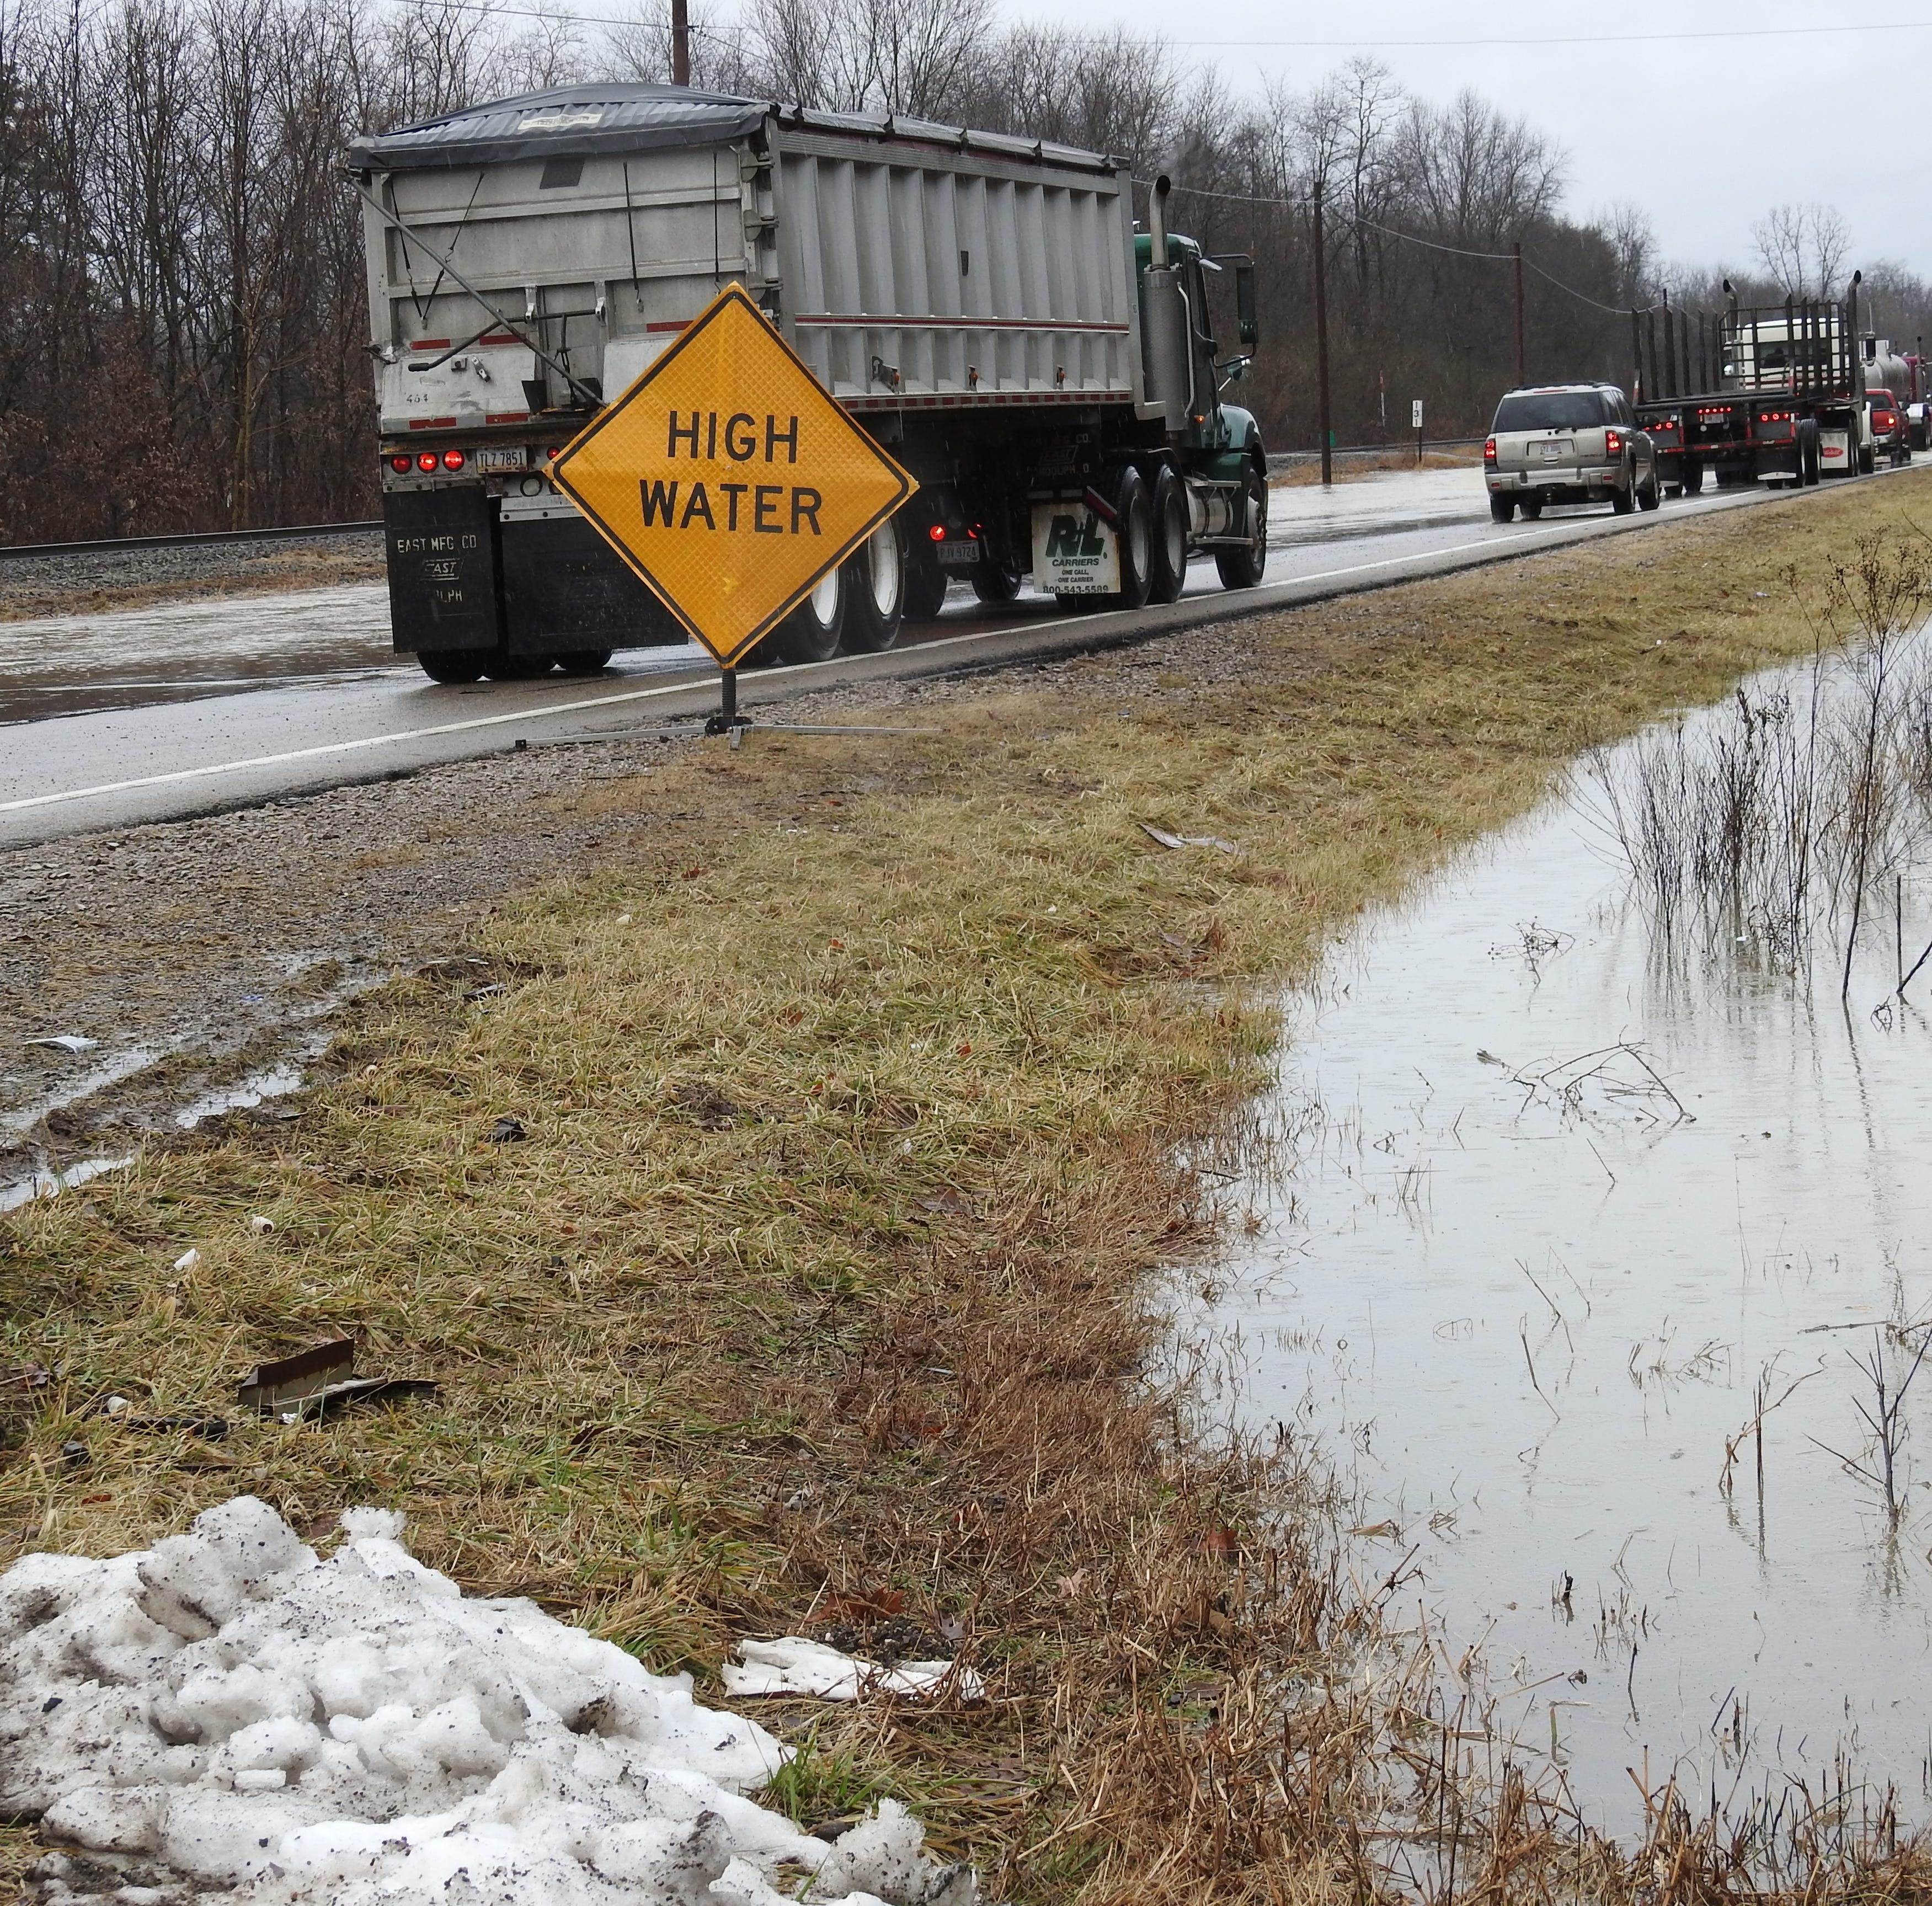 High water covers roads, Ohio 16 westbound closed